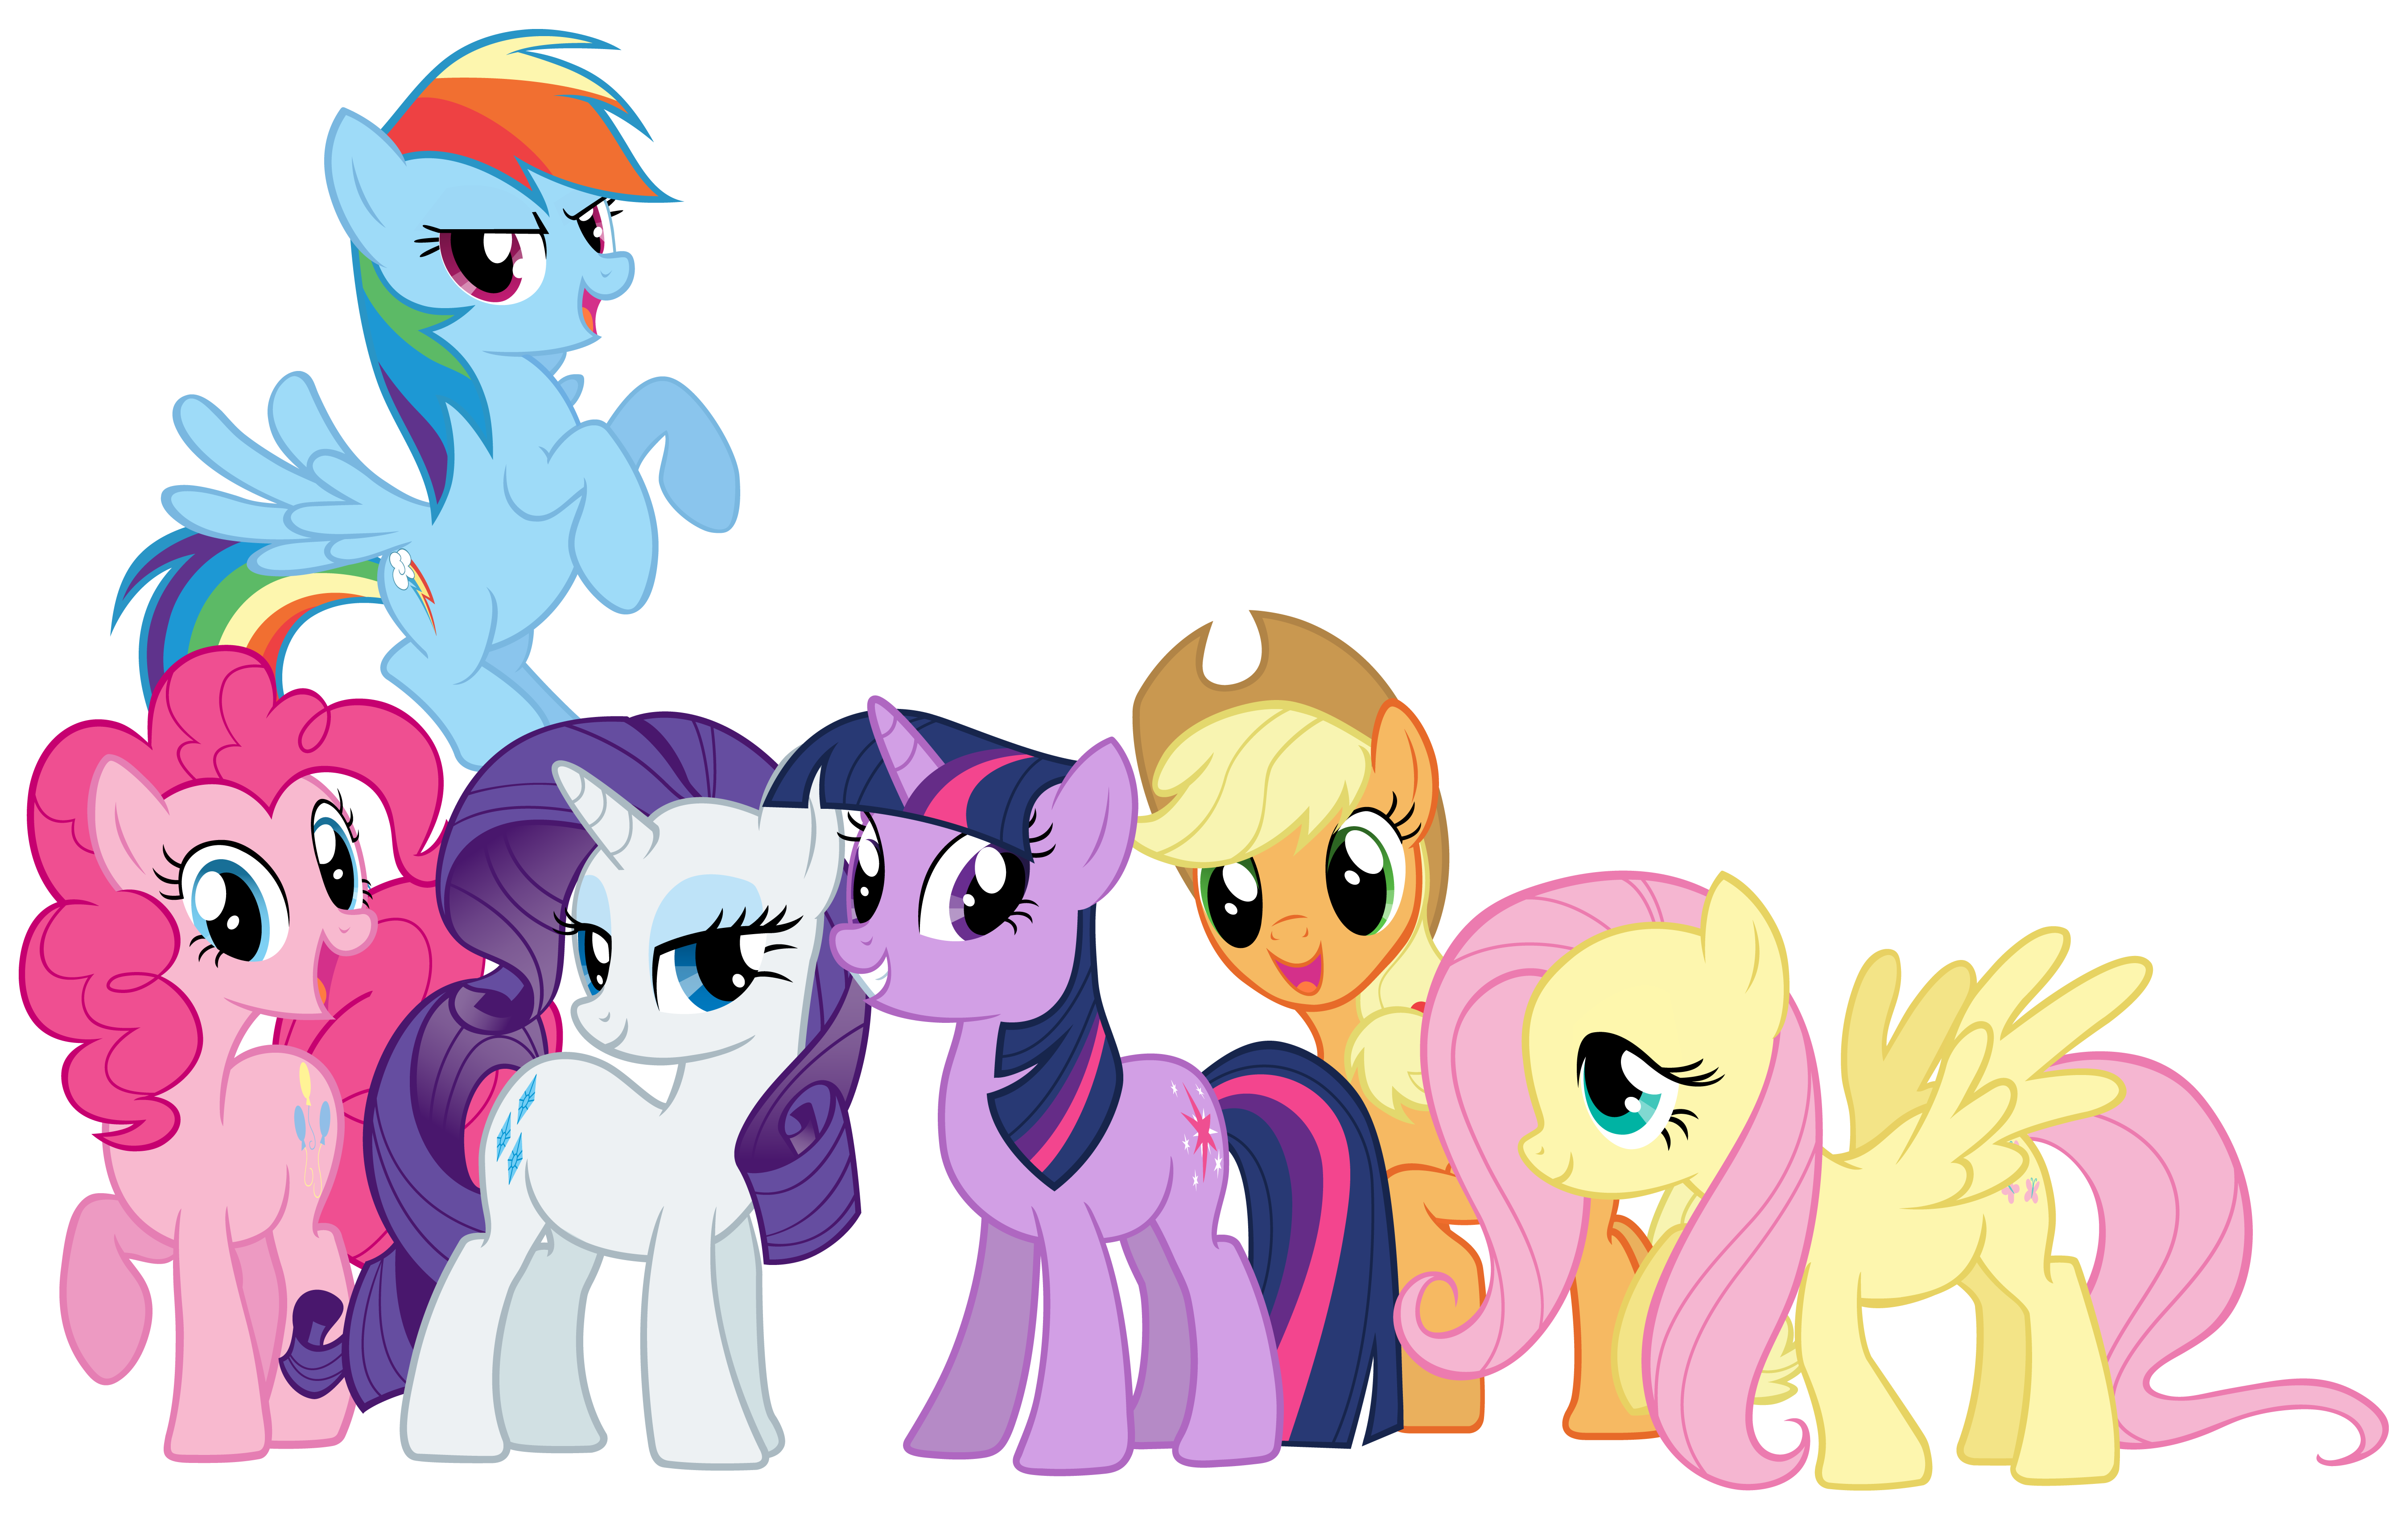 Mane 6 and Spike - Rainbowfied Group Photo by CaliAzian on DeviantArt